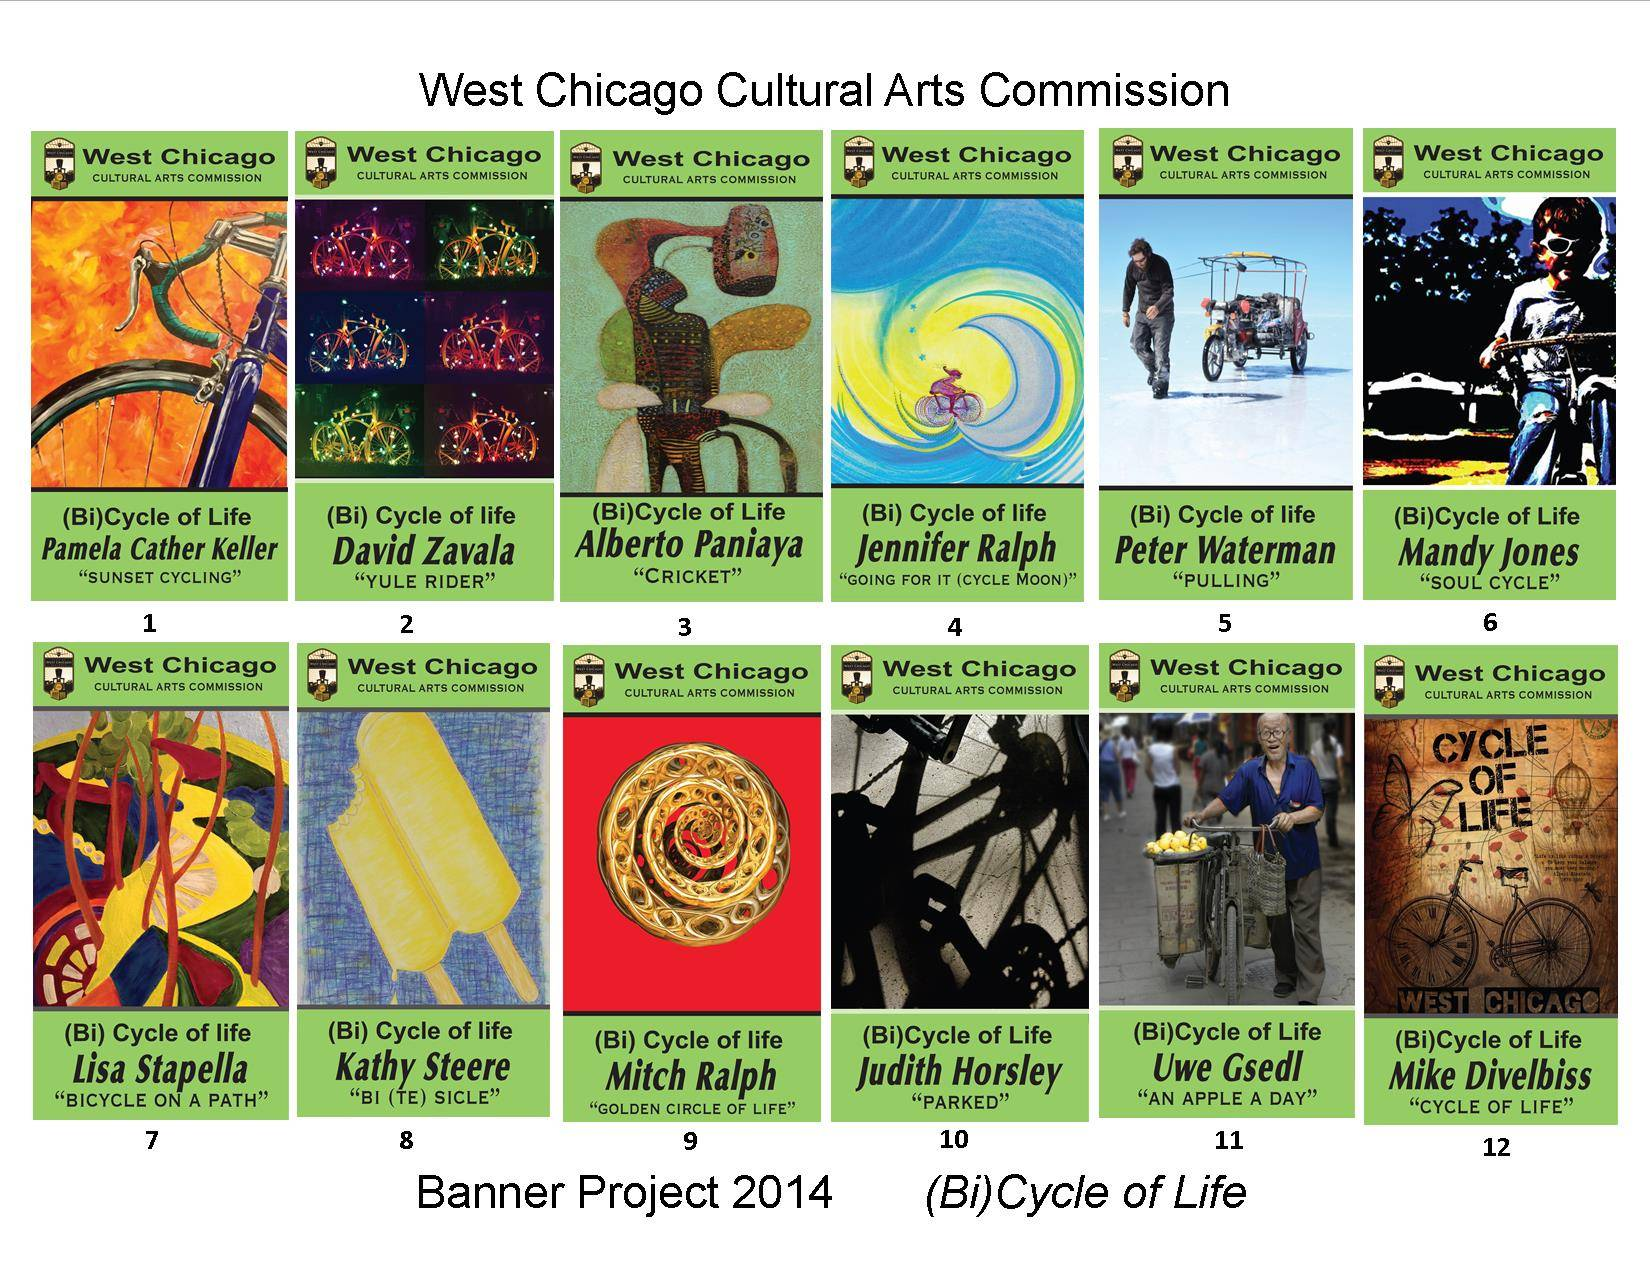 A brochure which features the 2014 Community Art Banner Project is available with a companion map identifying their locations on Main Street in West Chicago. Visit www.westchicago.org for all the details.